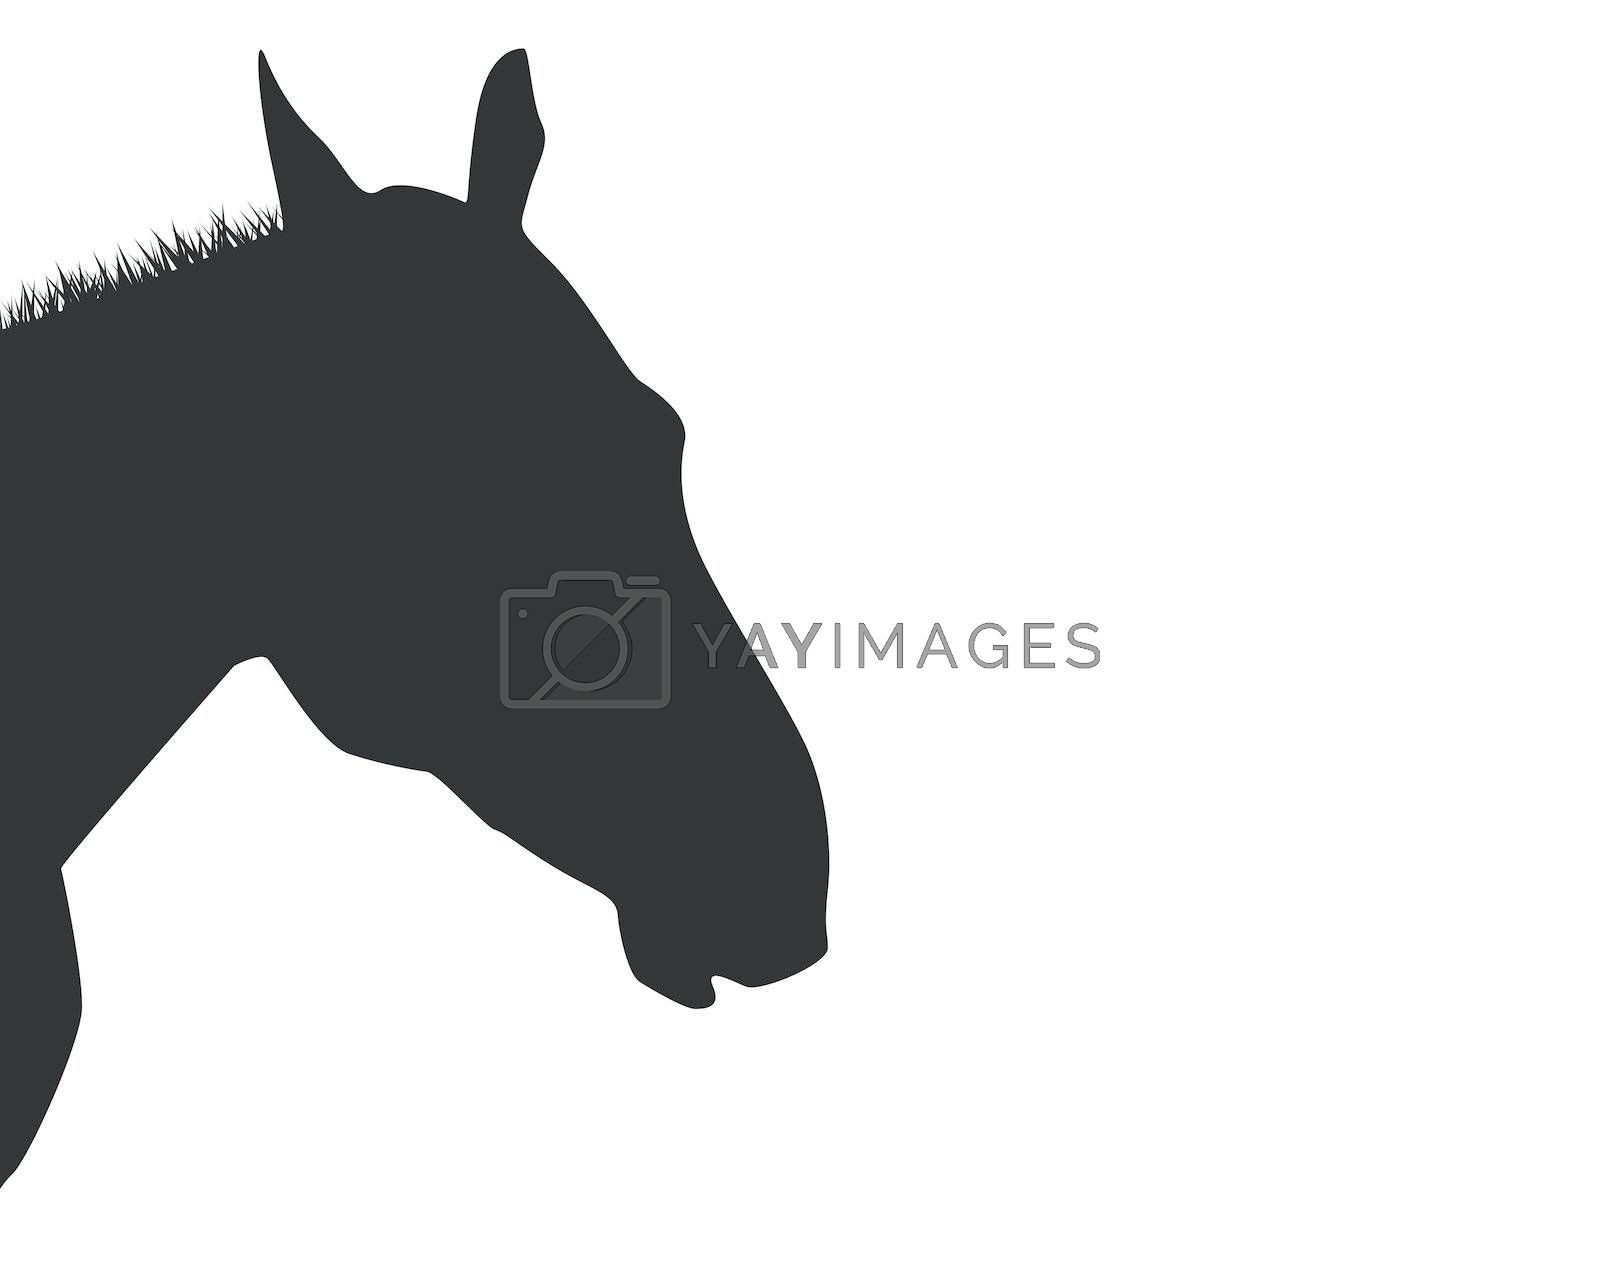 A silhouette of a horse head isolated on white